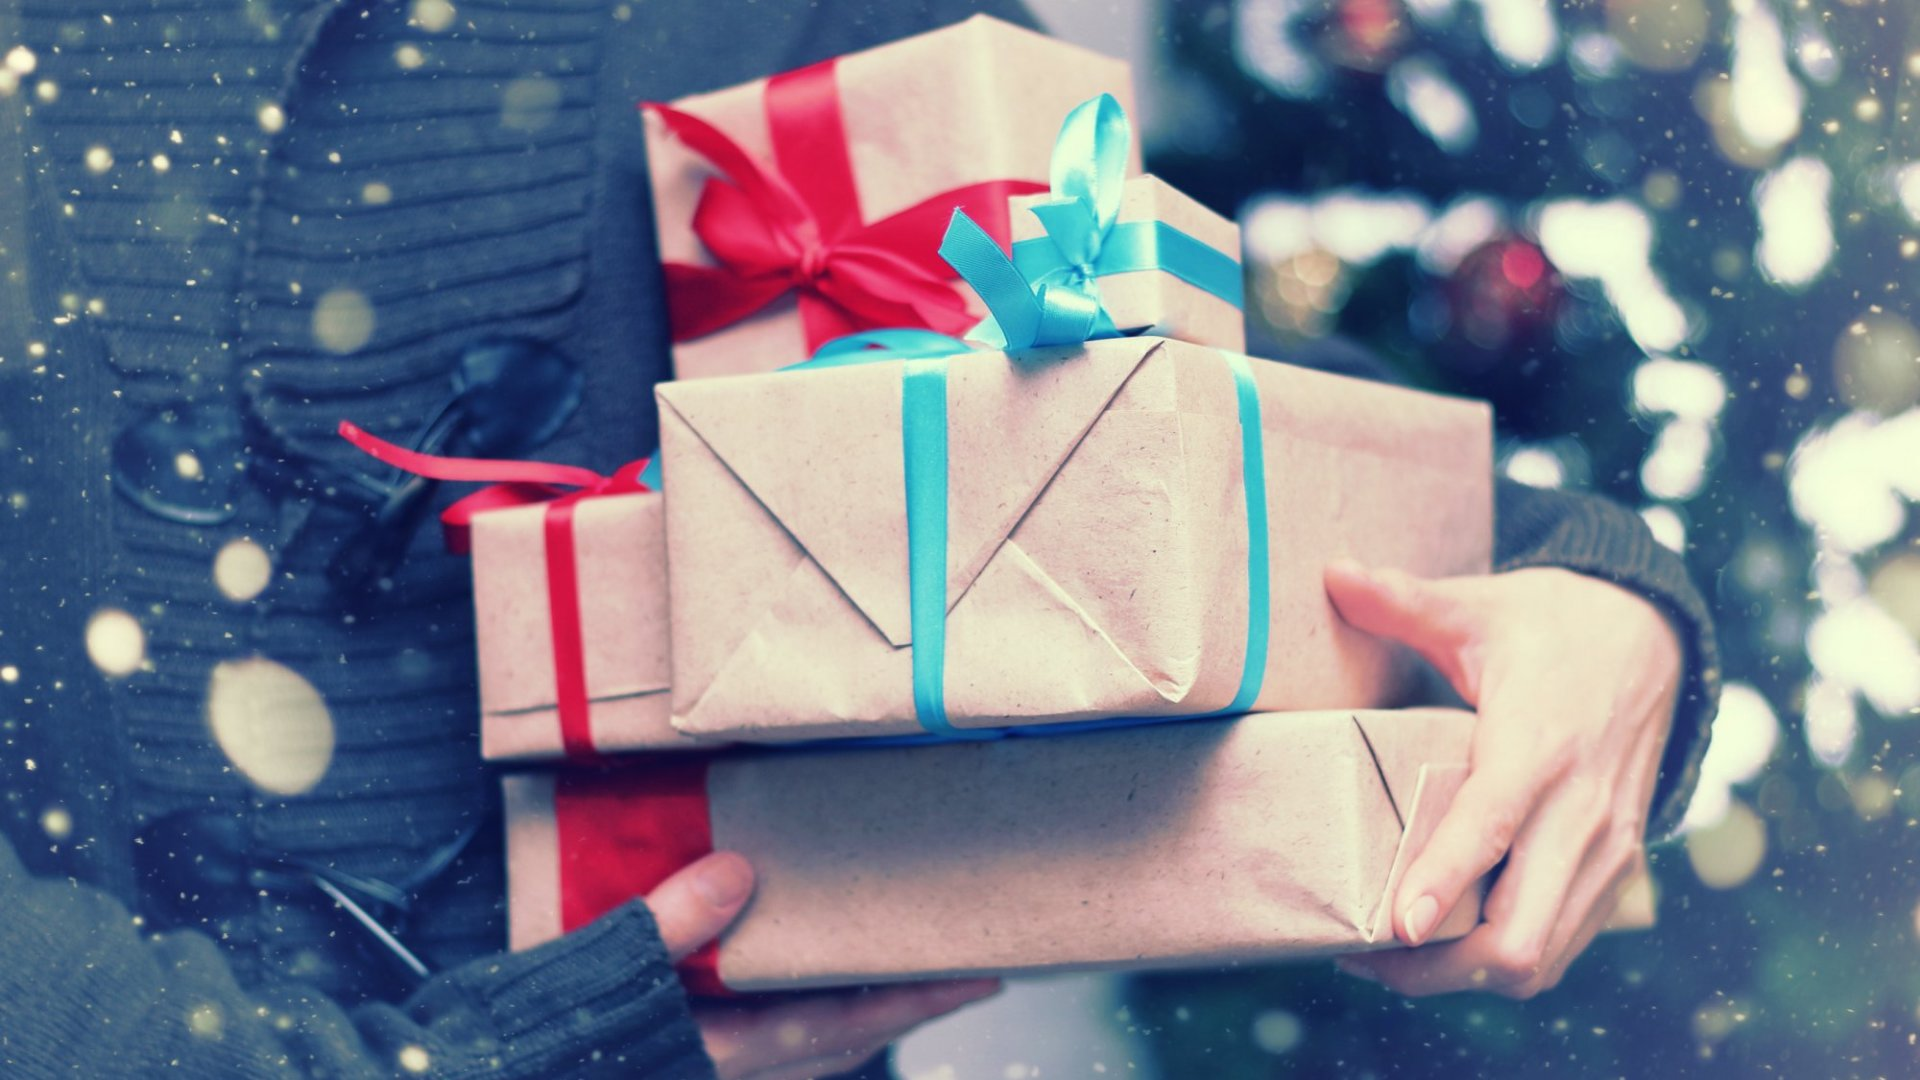 Make Your Employees Feel Valued With These 6 Festive Gifts